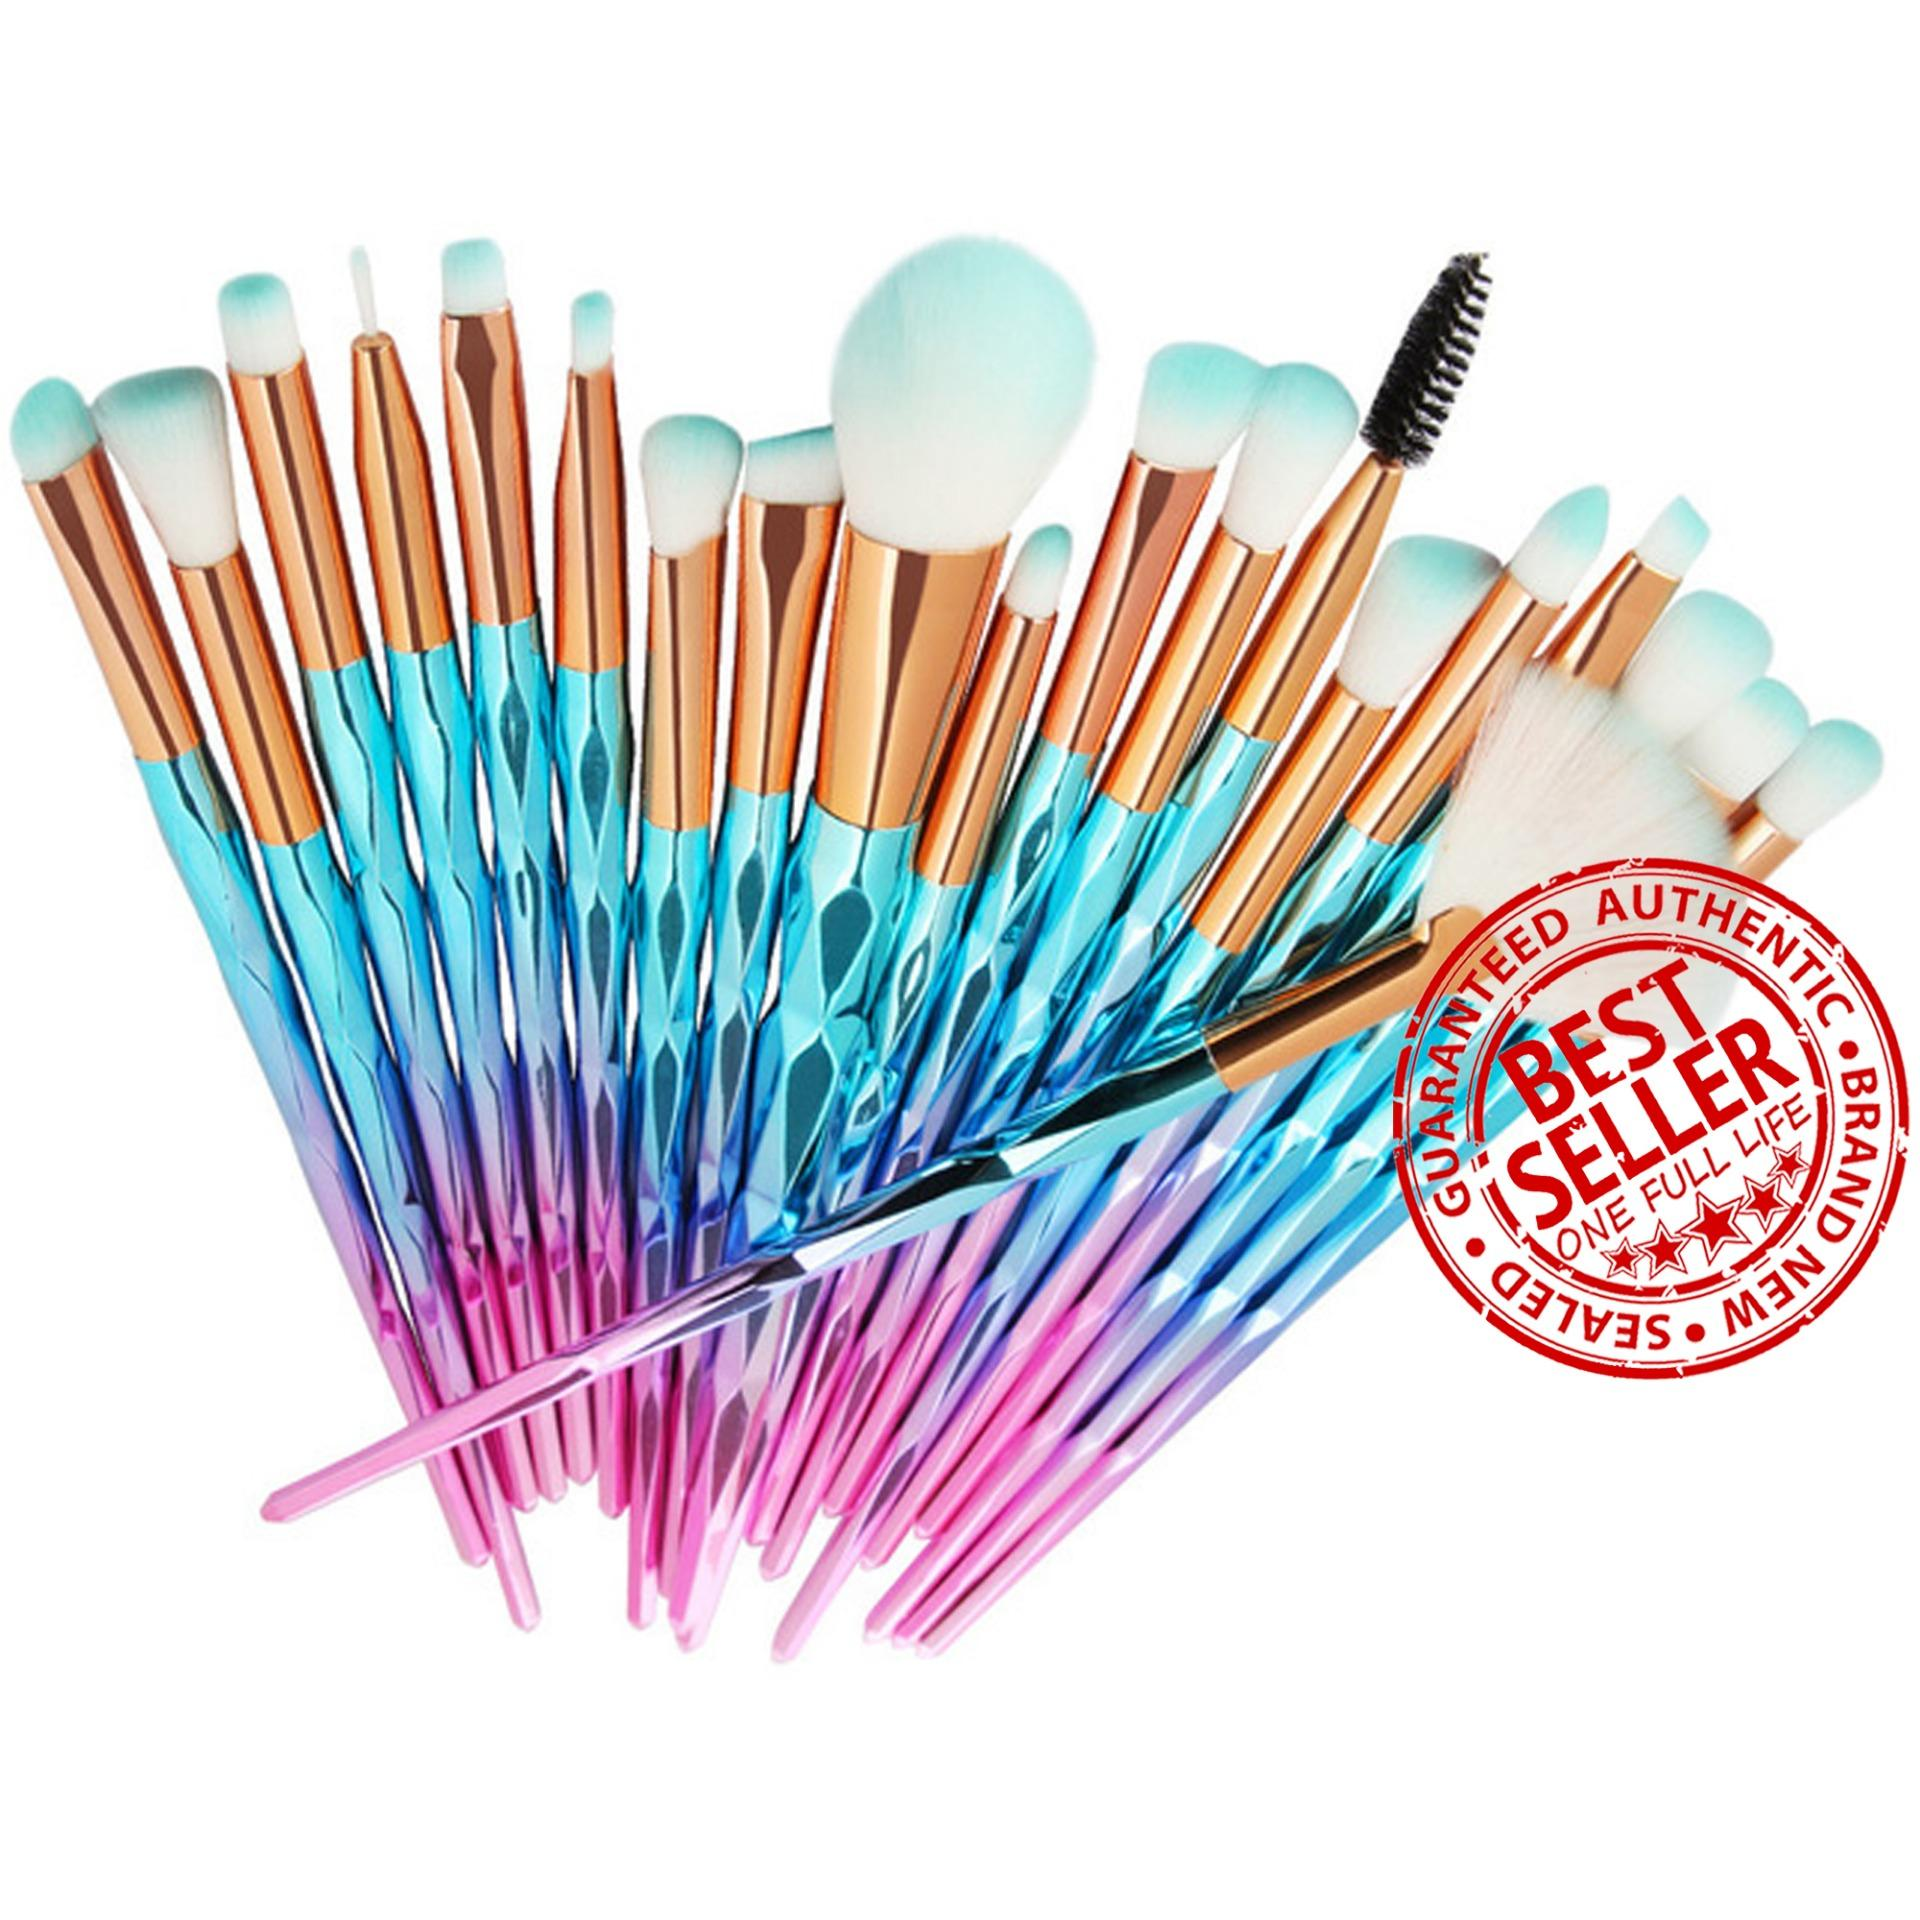 Philippines Best Buy 360do Brush 04 11 2018 Tooth For Adults Pink Unicorn Makeup Set 20 Piece Mint Green